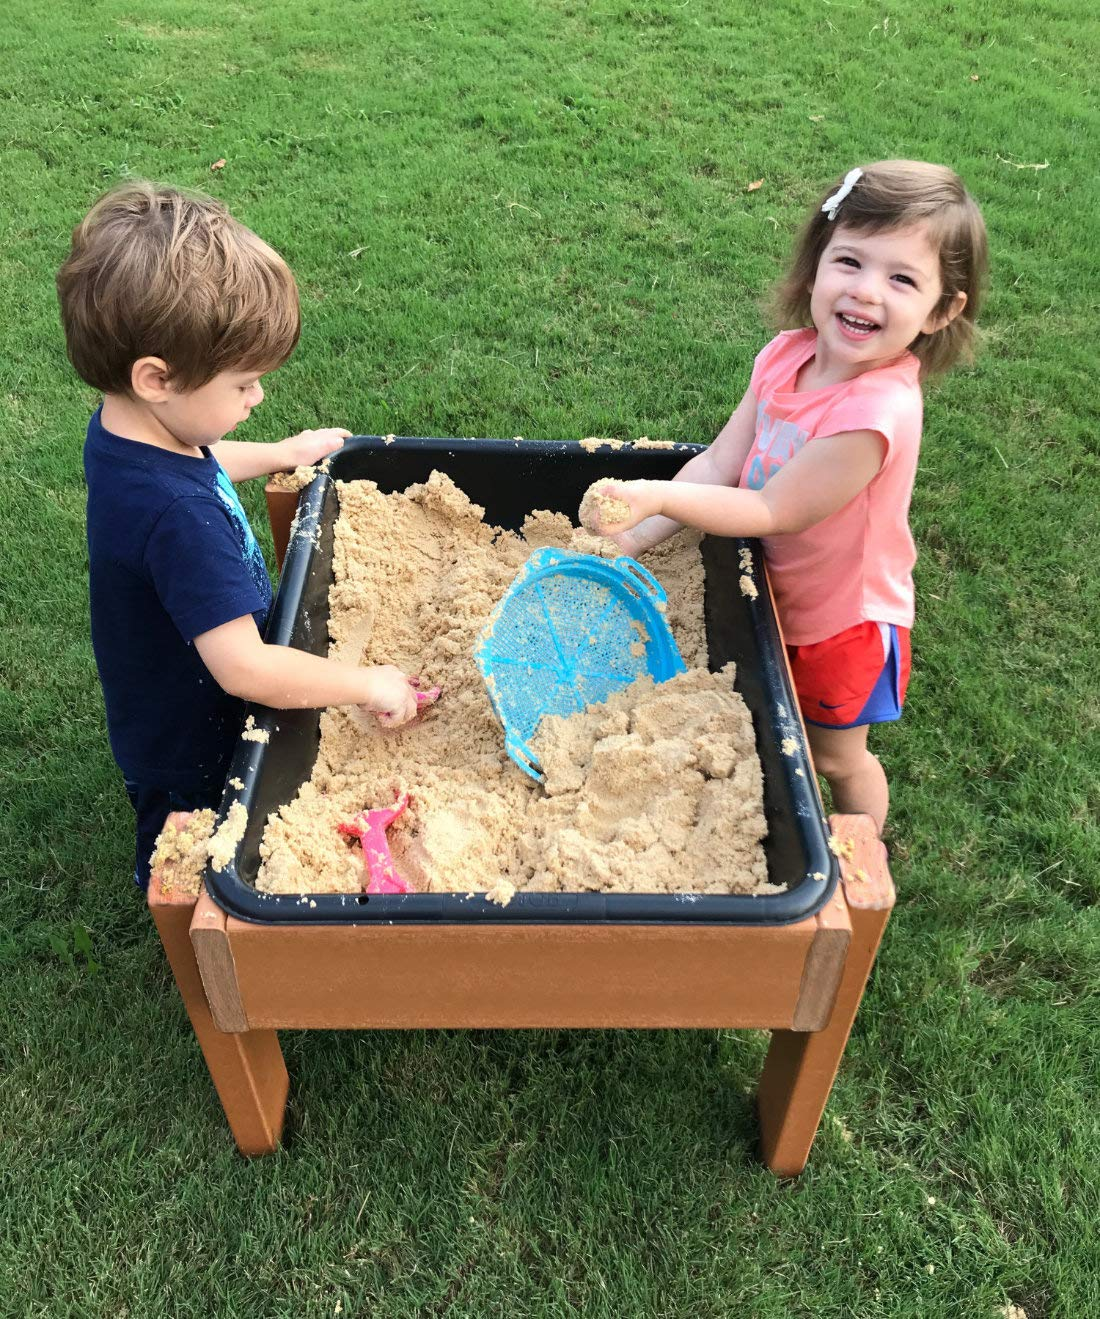 #44460 Kids' Station Outdoor Sand/Water Table w/Drain by Kids' Station by Peffer Cabinets (Image #1)